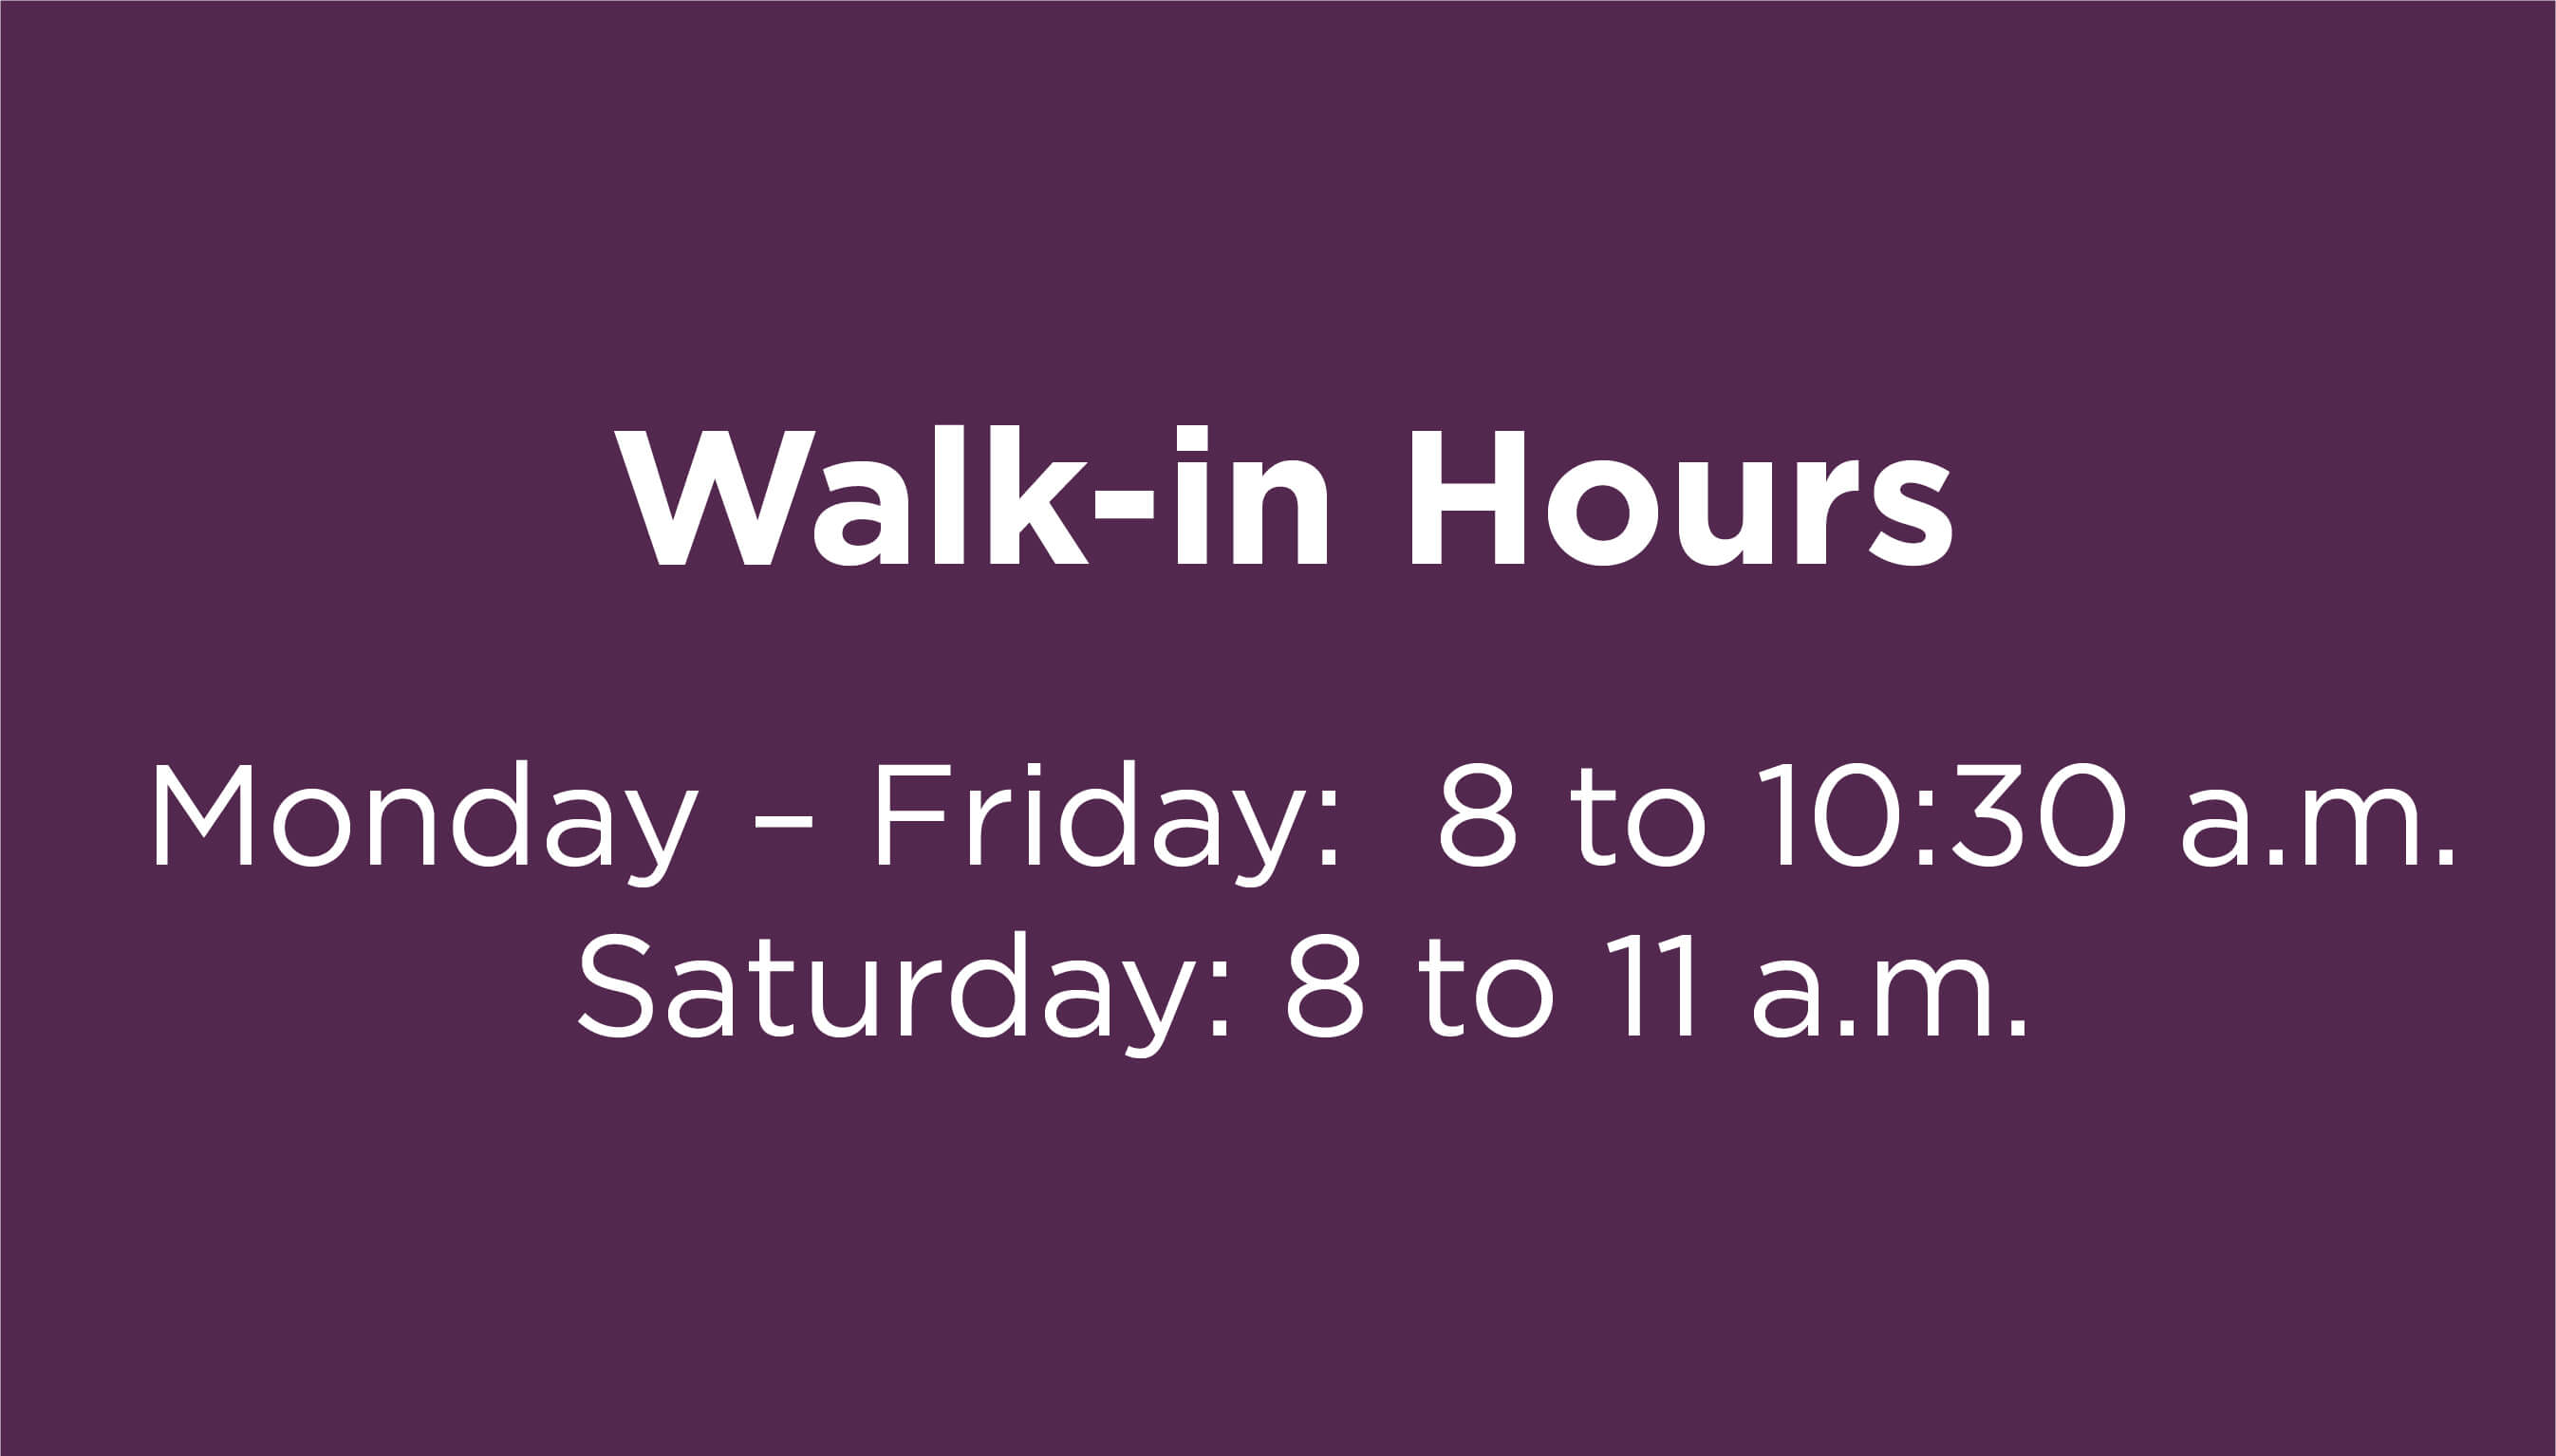 South Hills, Bethel Park Office Walk-in hours